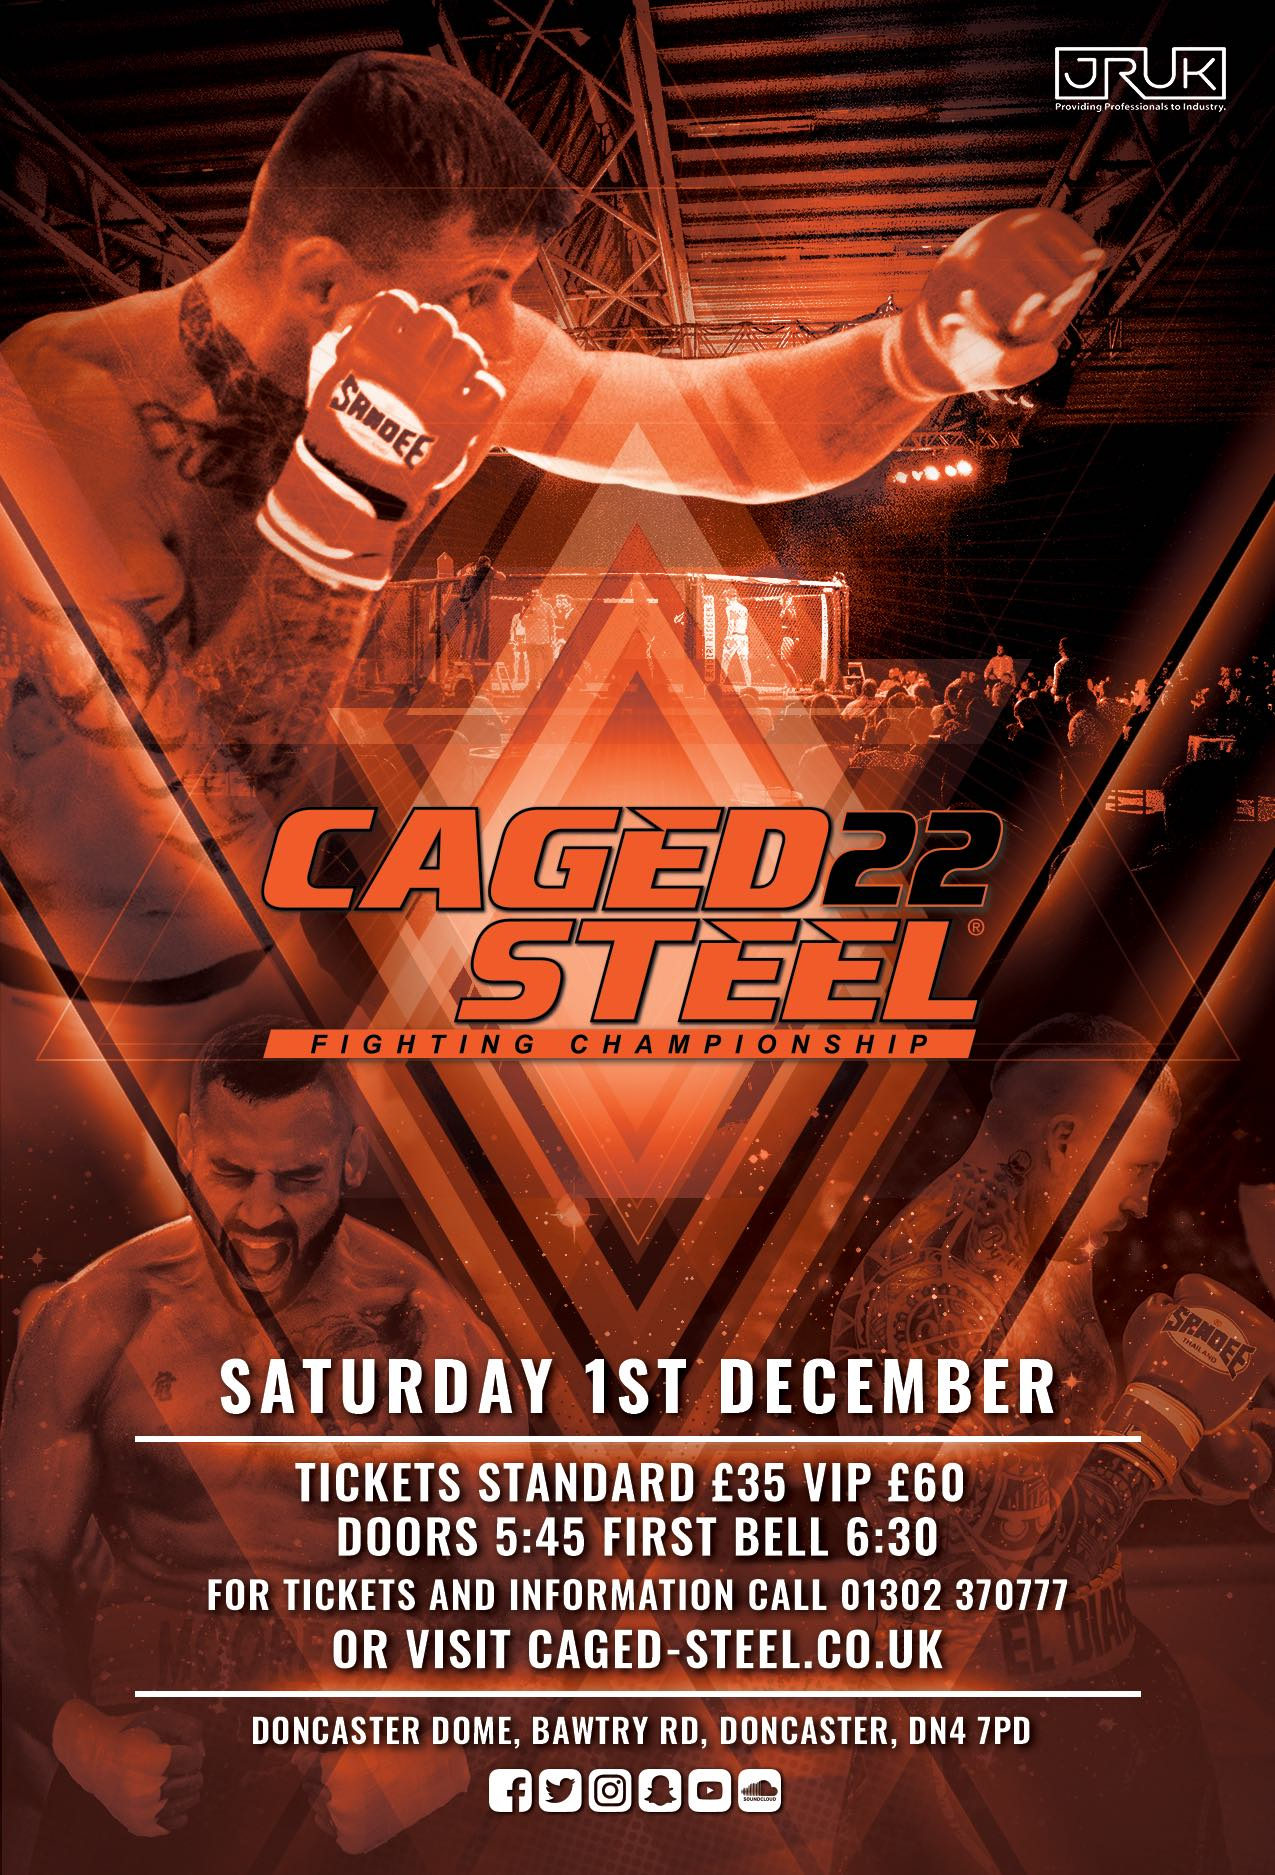 Caged Steel 22 - Doncaster - December 1st